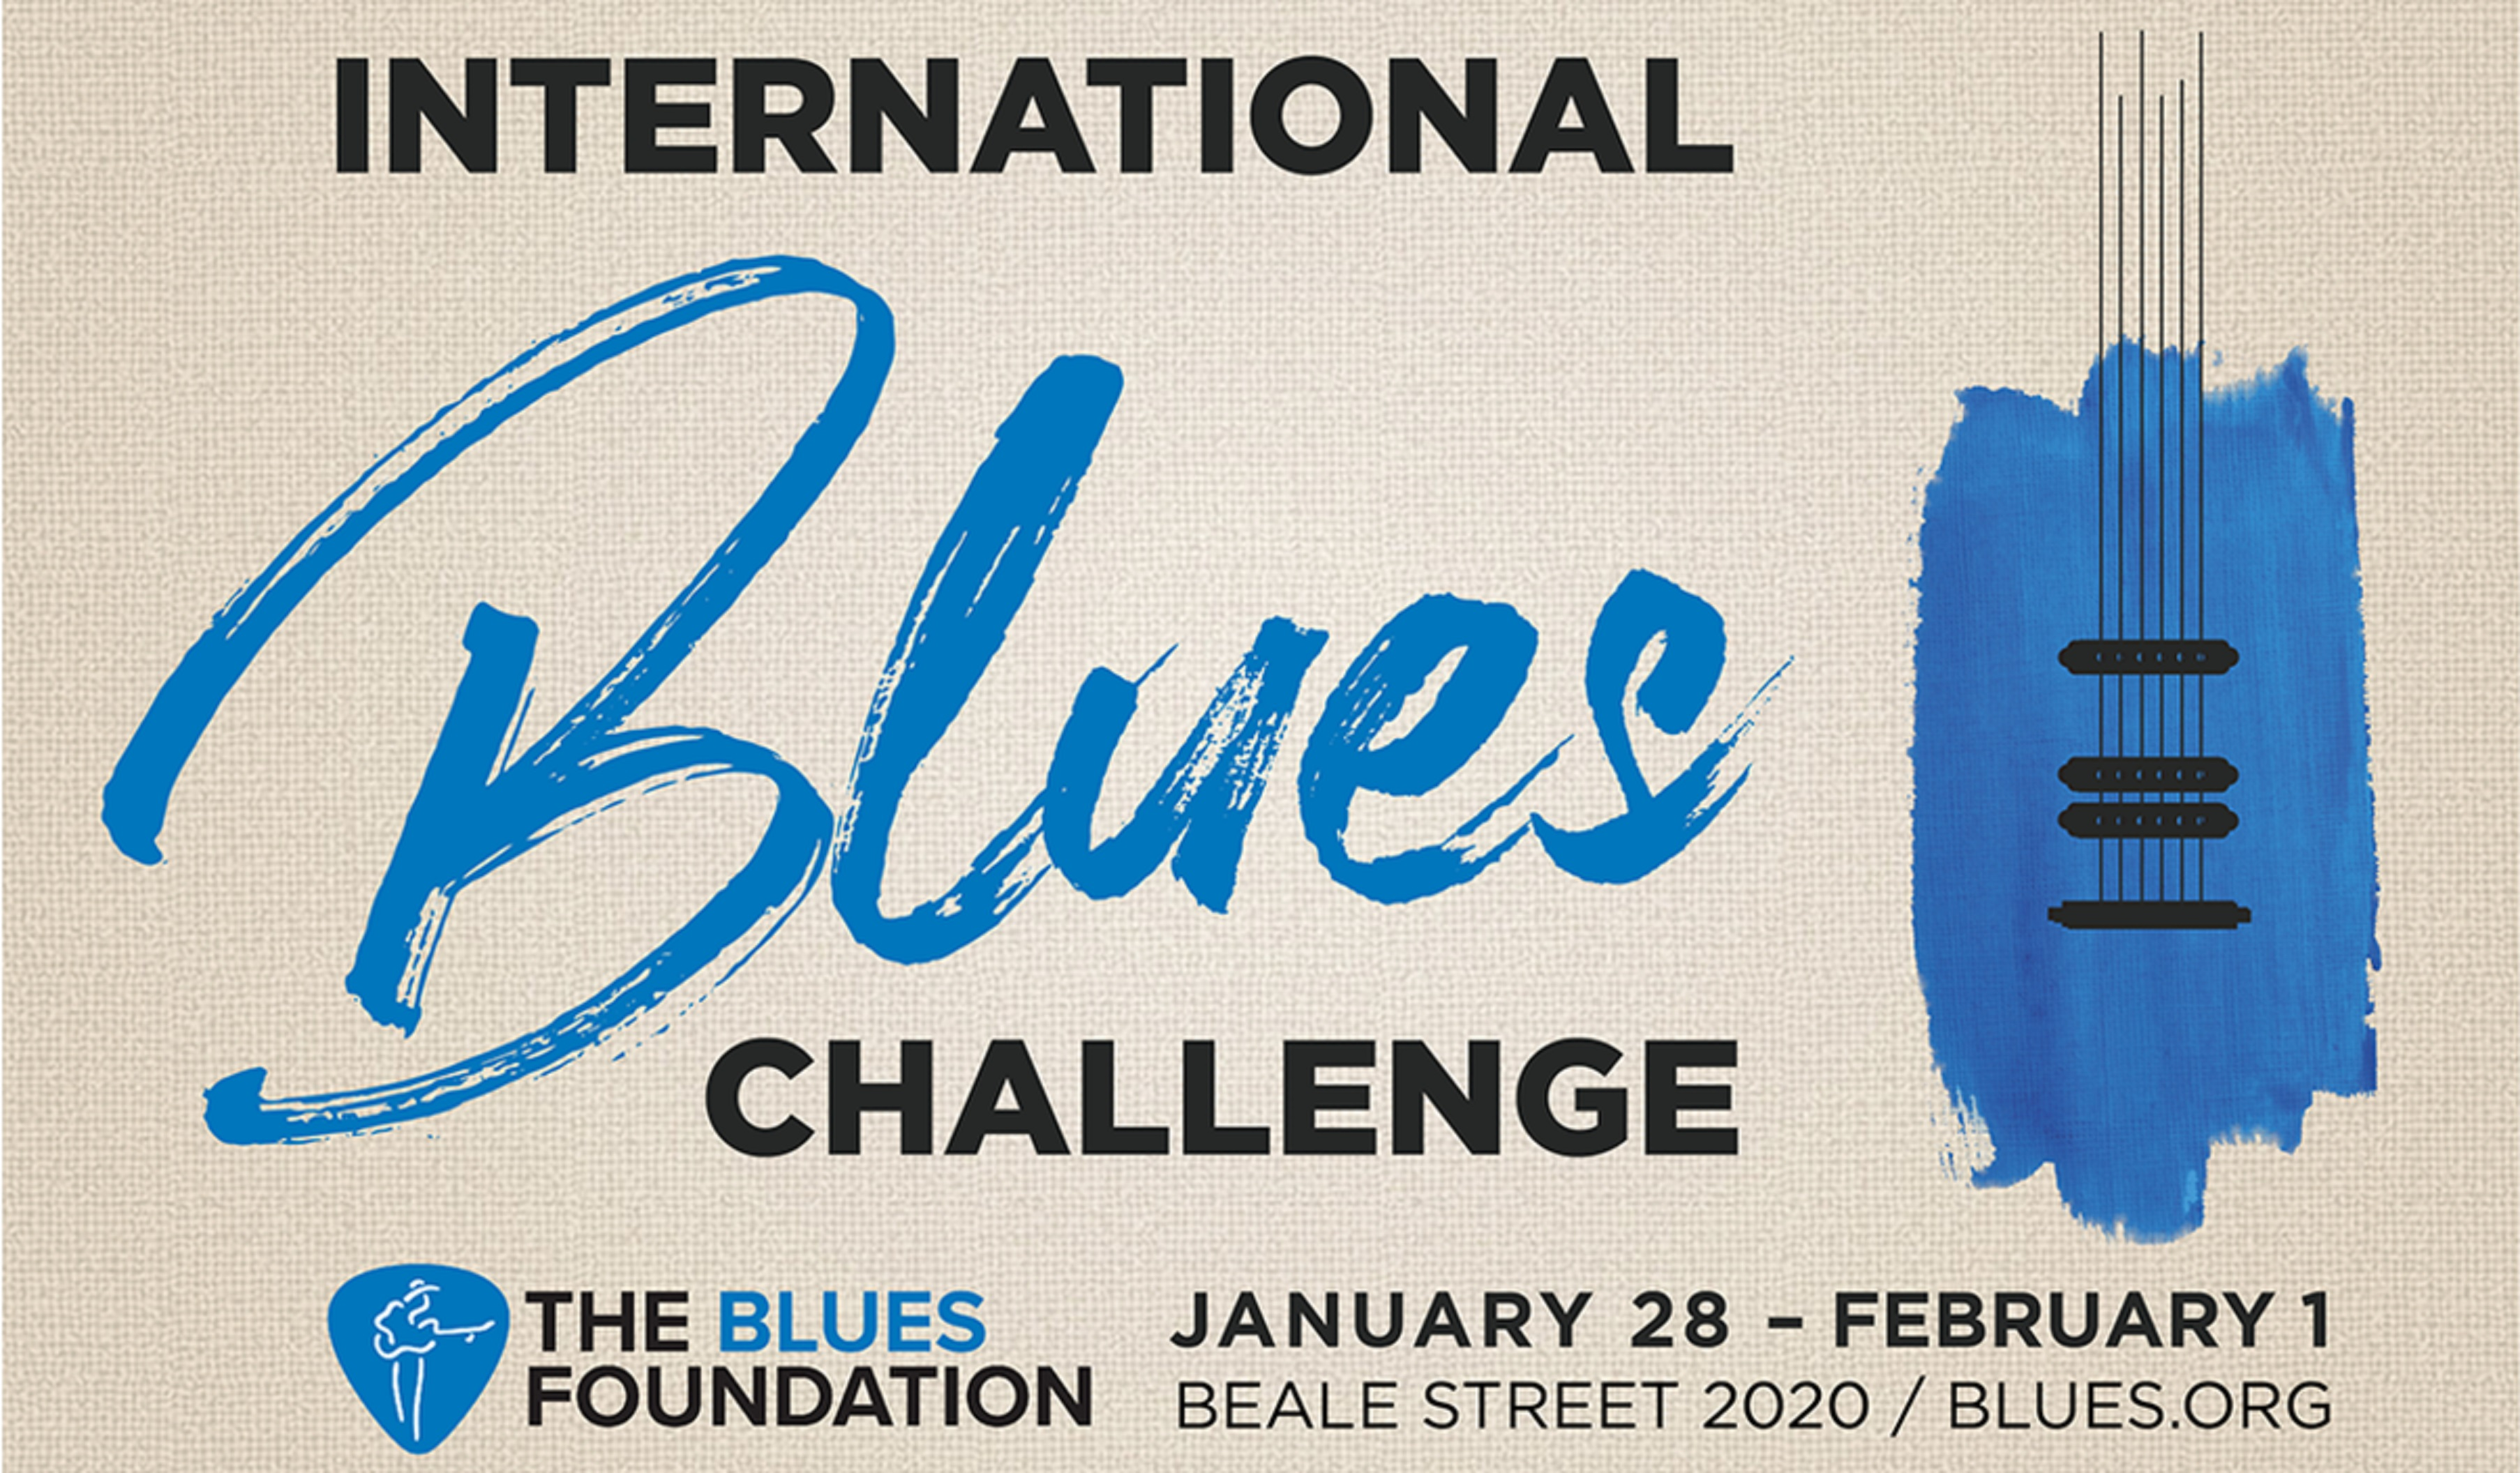 International Blues Challenge winners announced